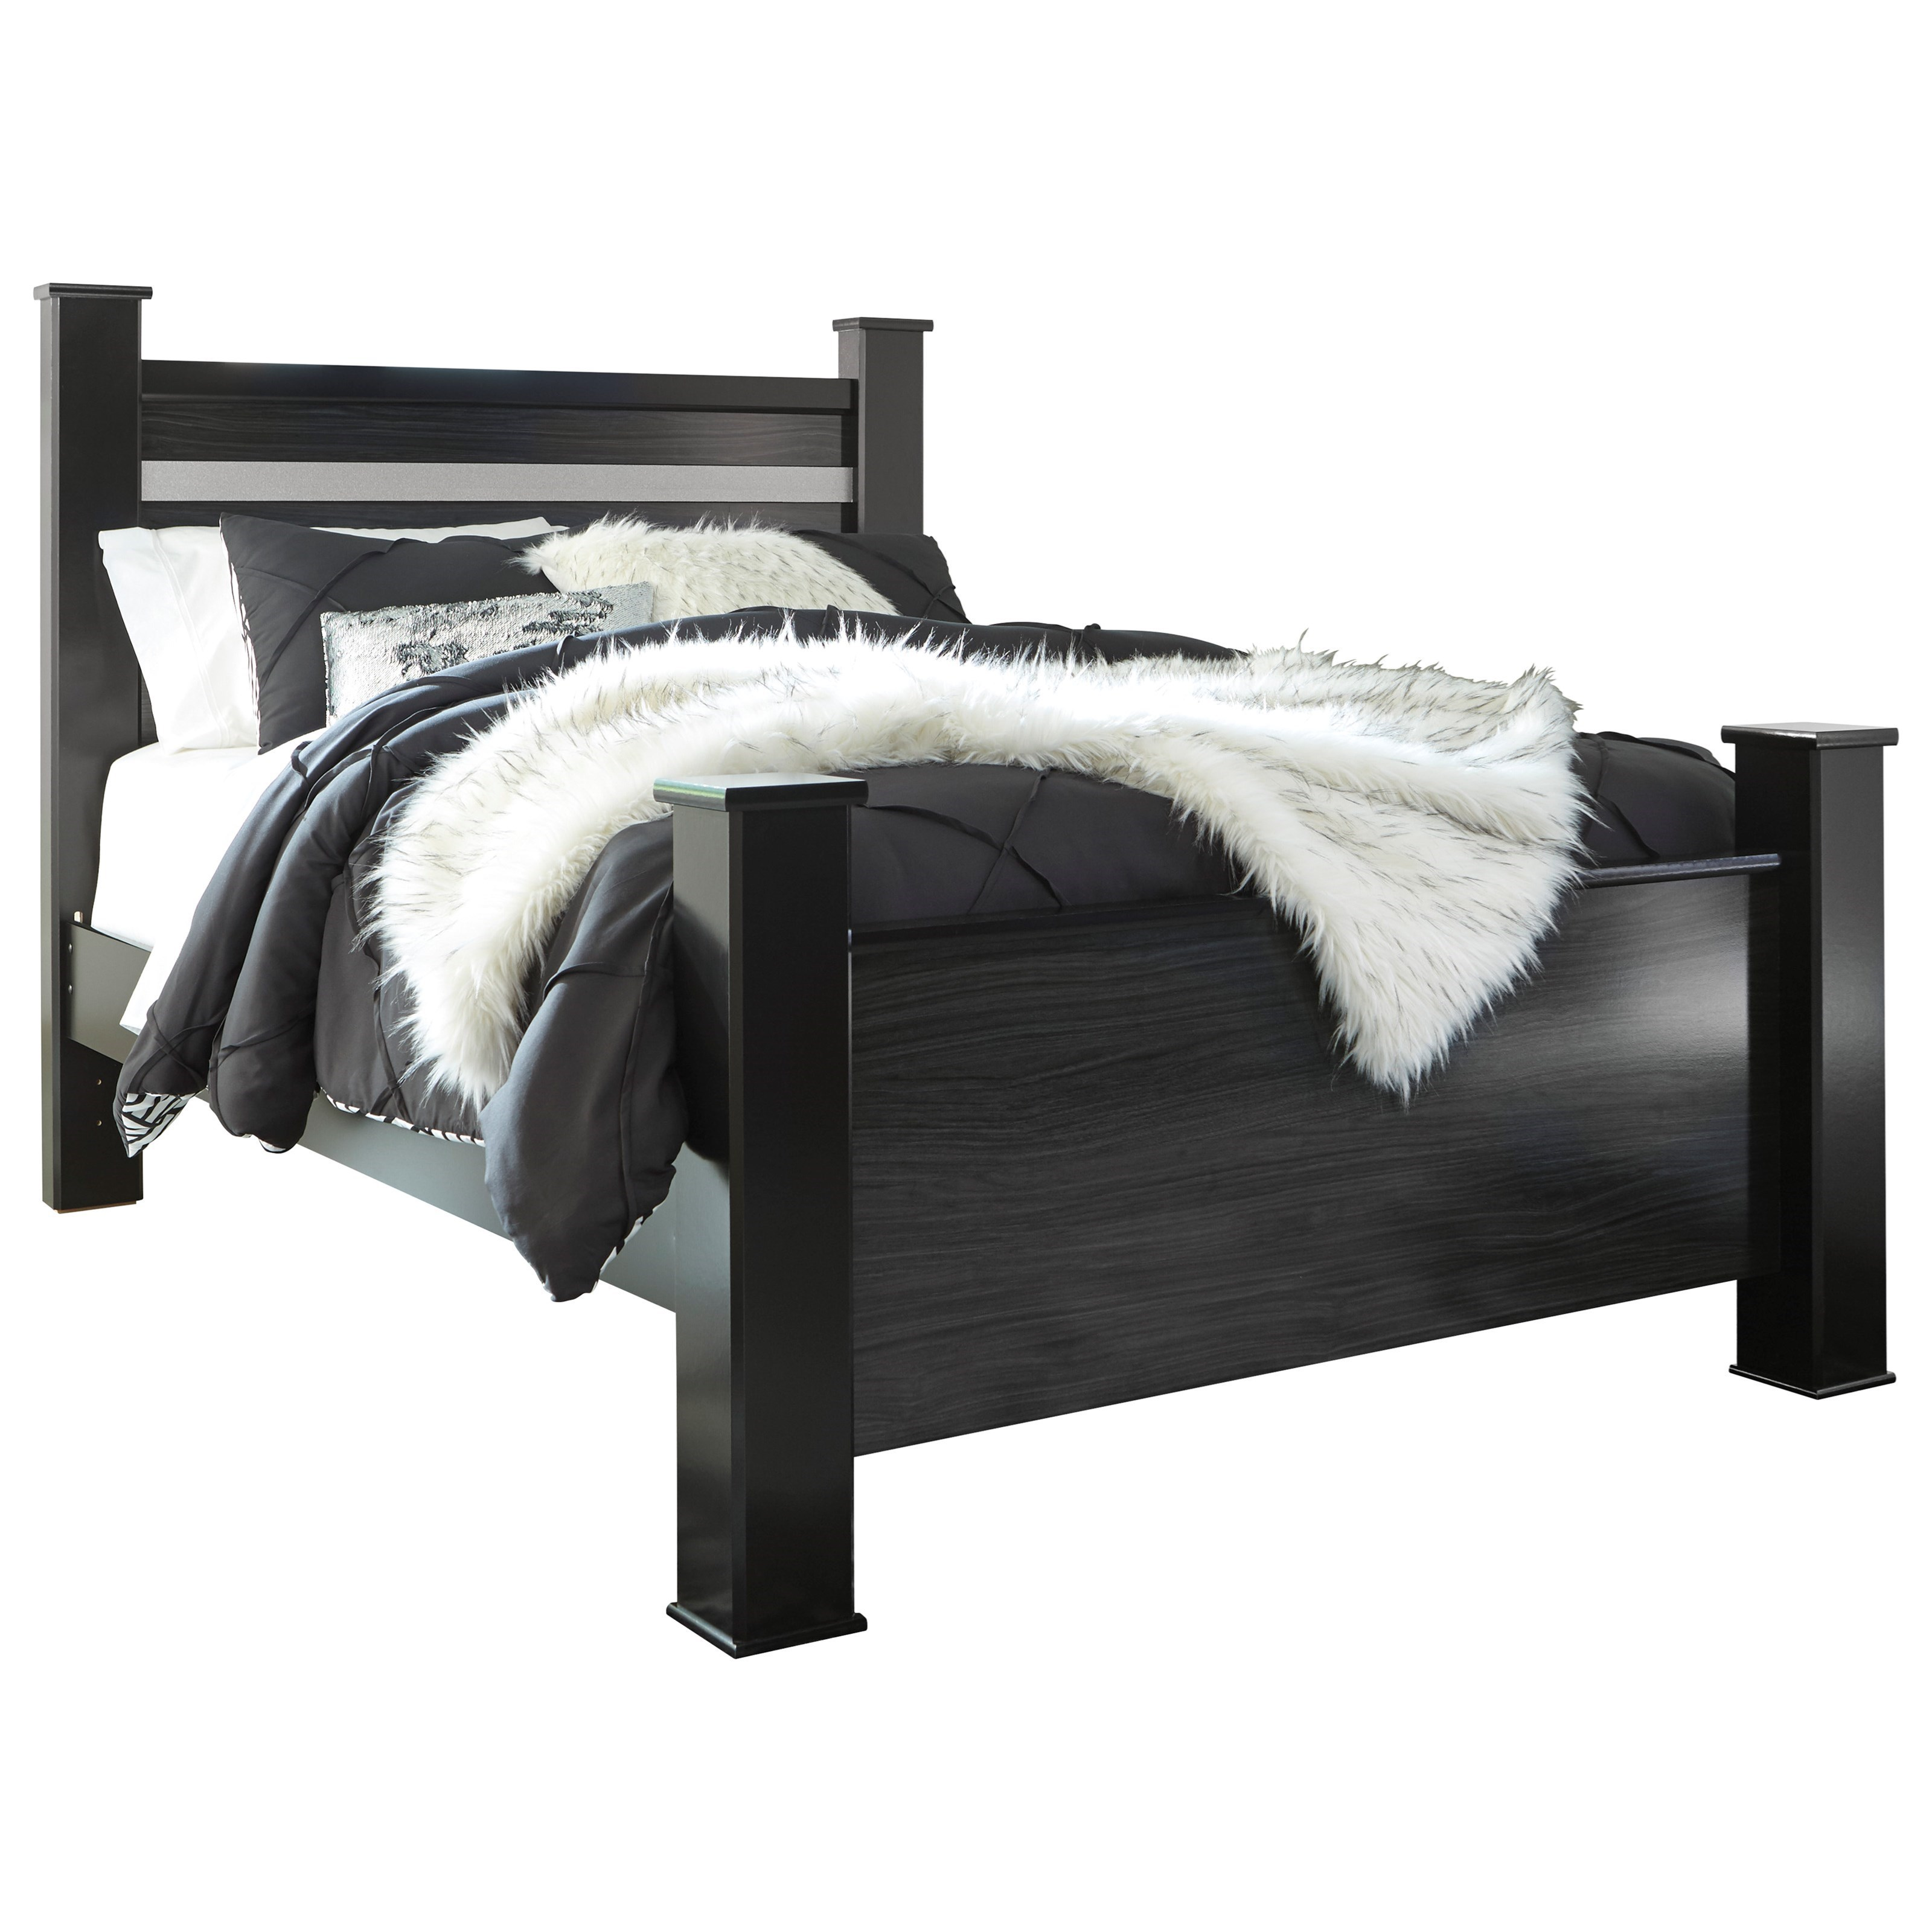 Signature Design By Ashley Starberry Black Finish Queen Poster Bed With Glitter Accent Panel A1 Furniture Mattress Panel Beds